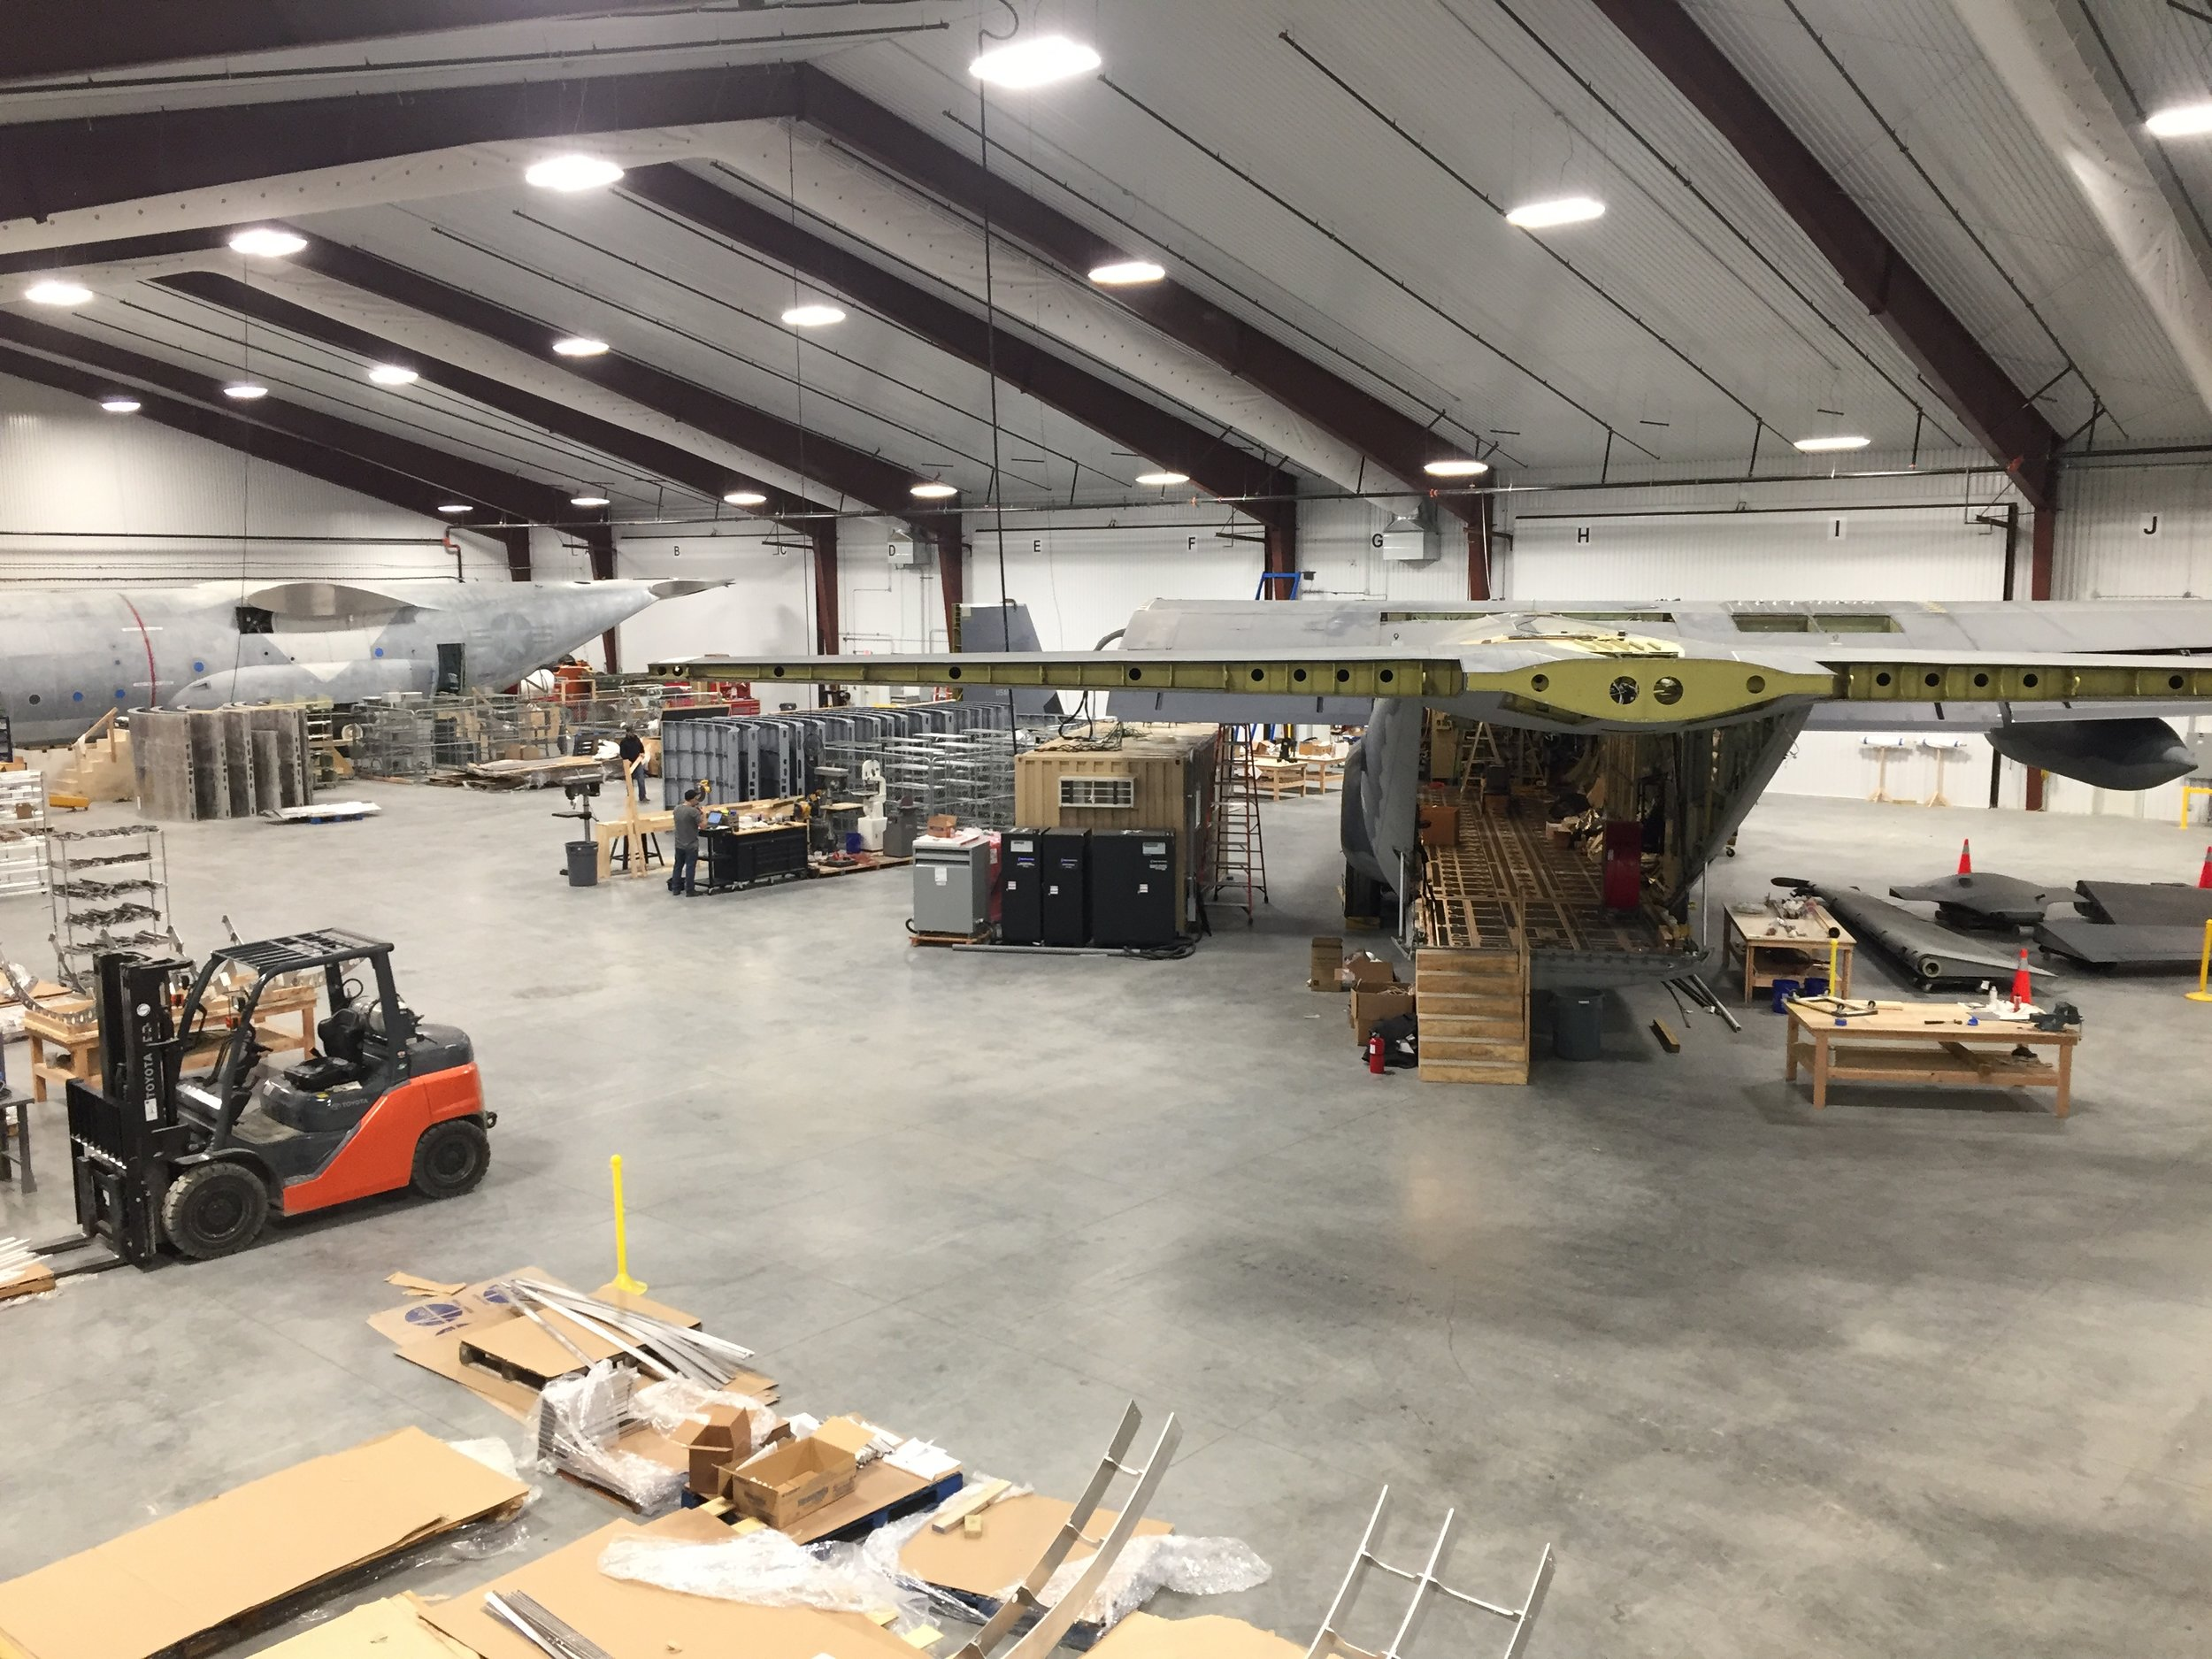 C-130 Fuselage Trainers Under Construction